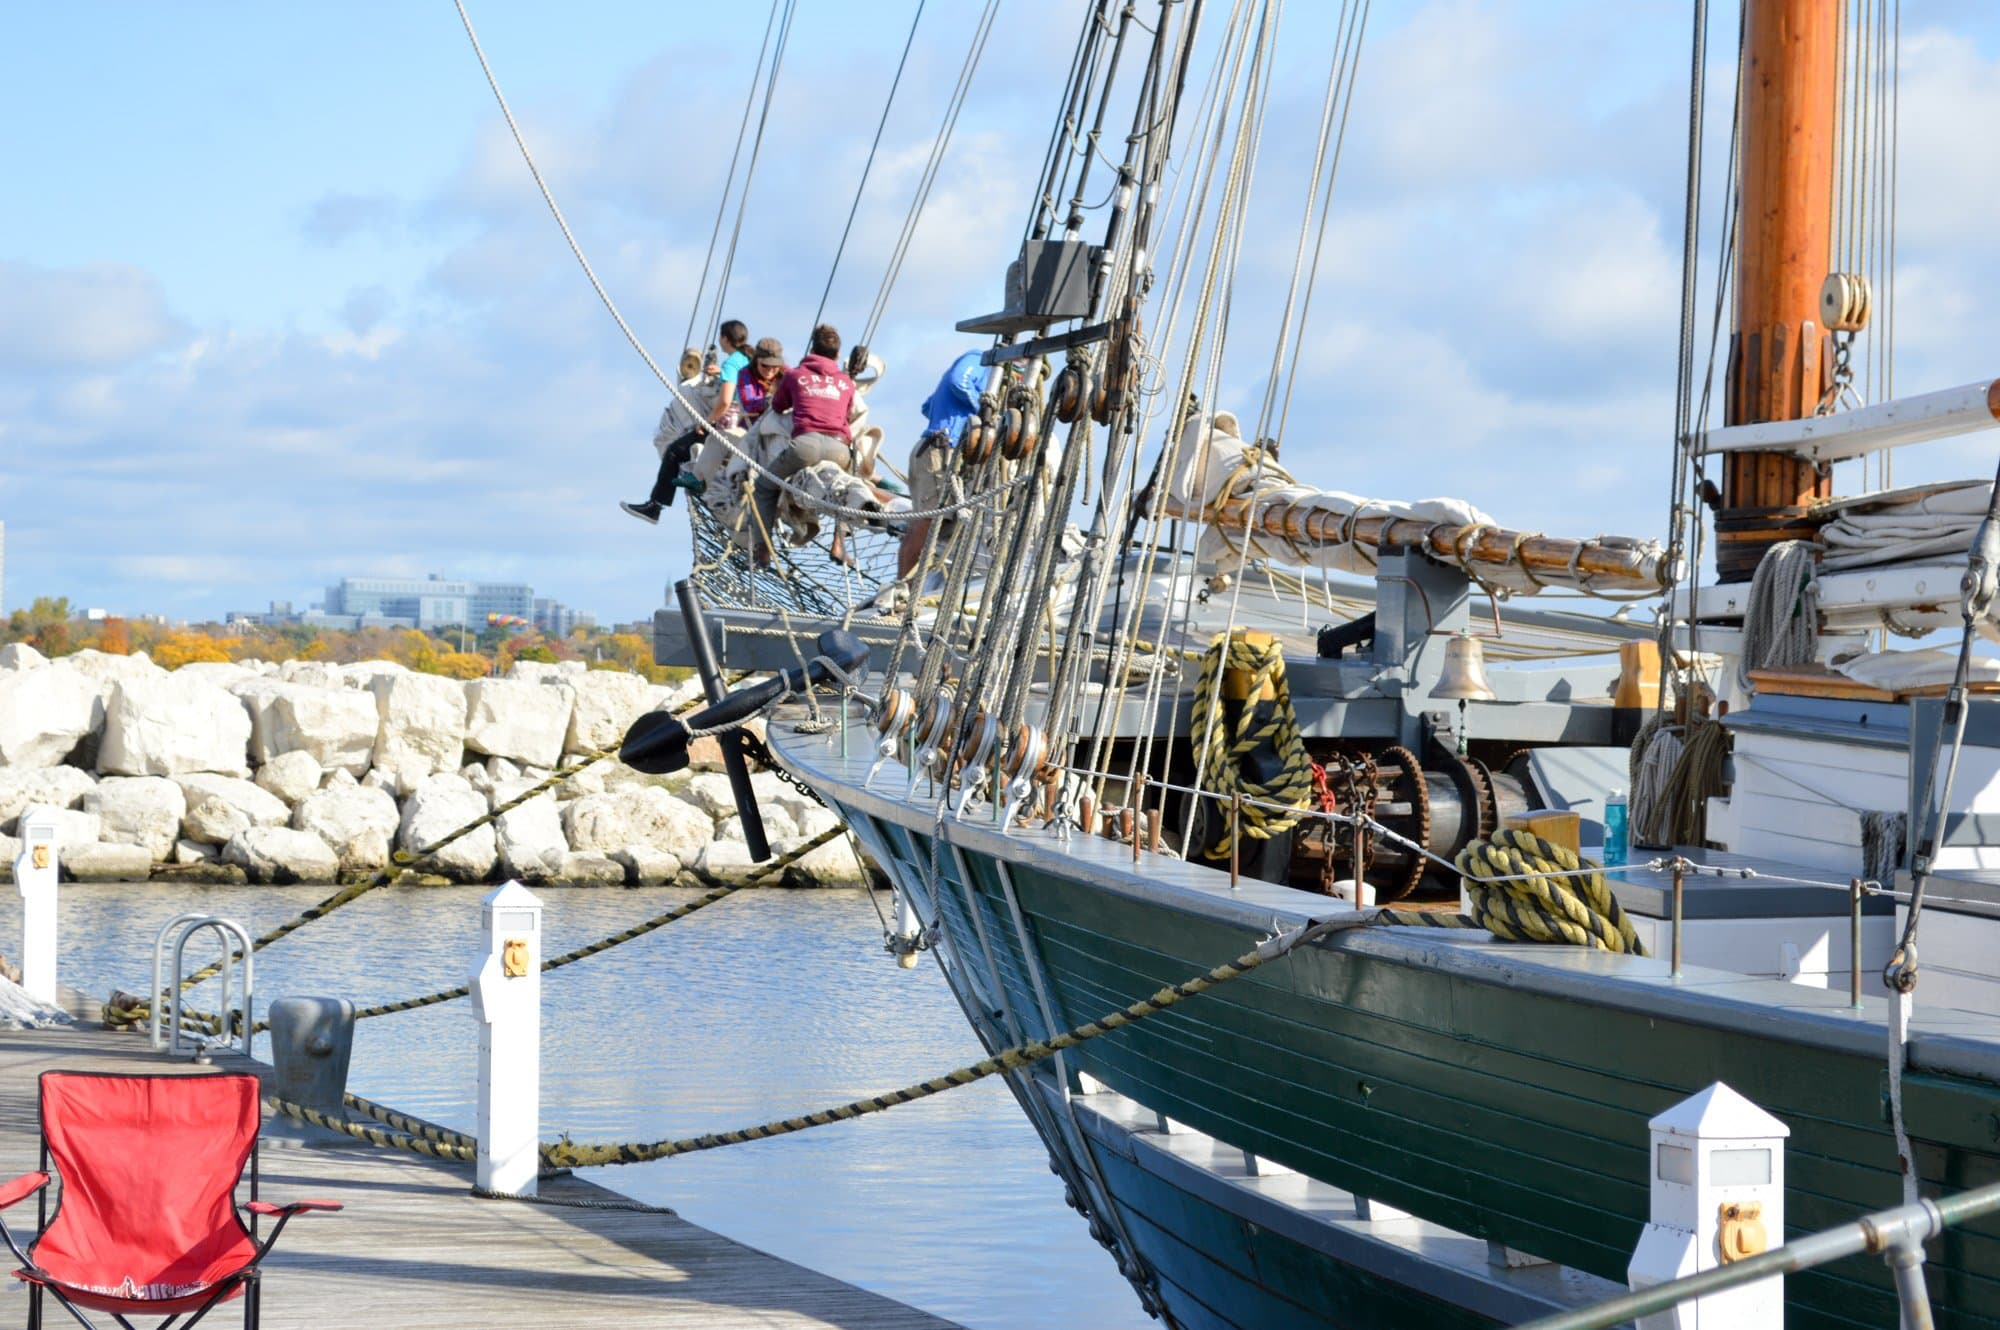 Learn to sail a Great Lakes Schooner at Discovery World (Photo credit: Bryan Richards)